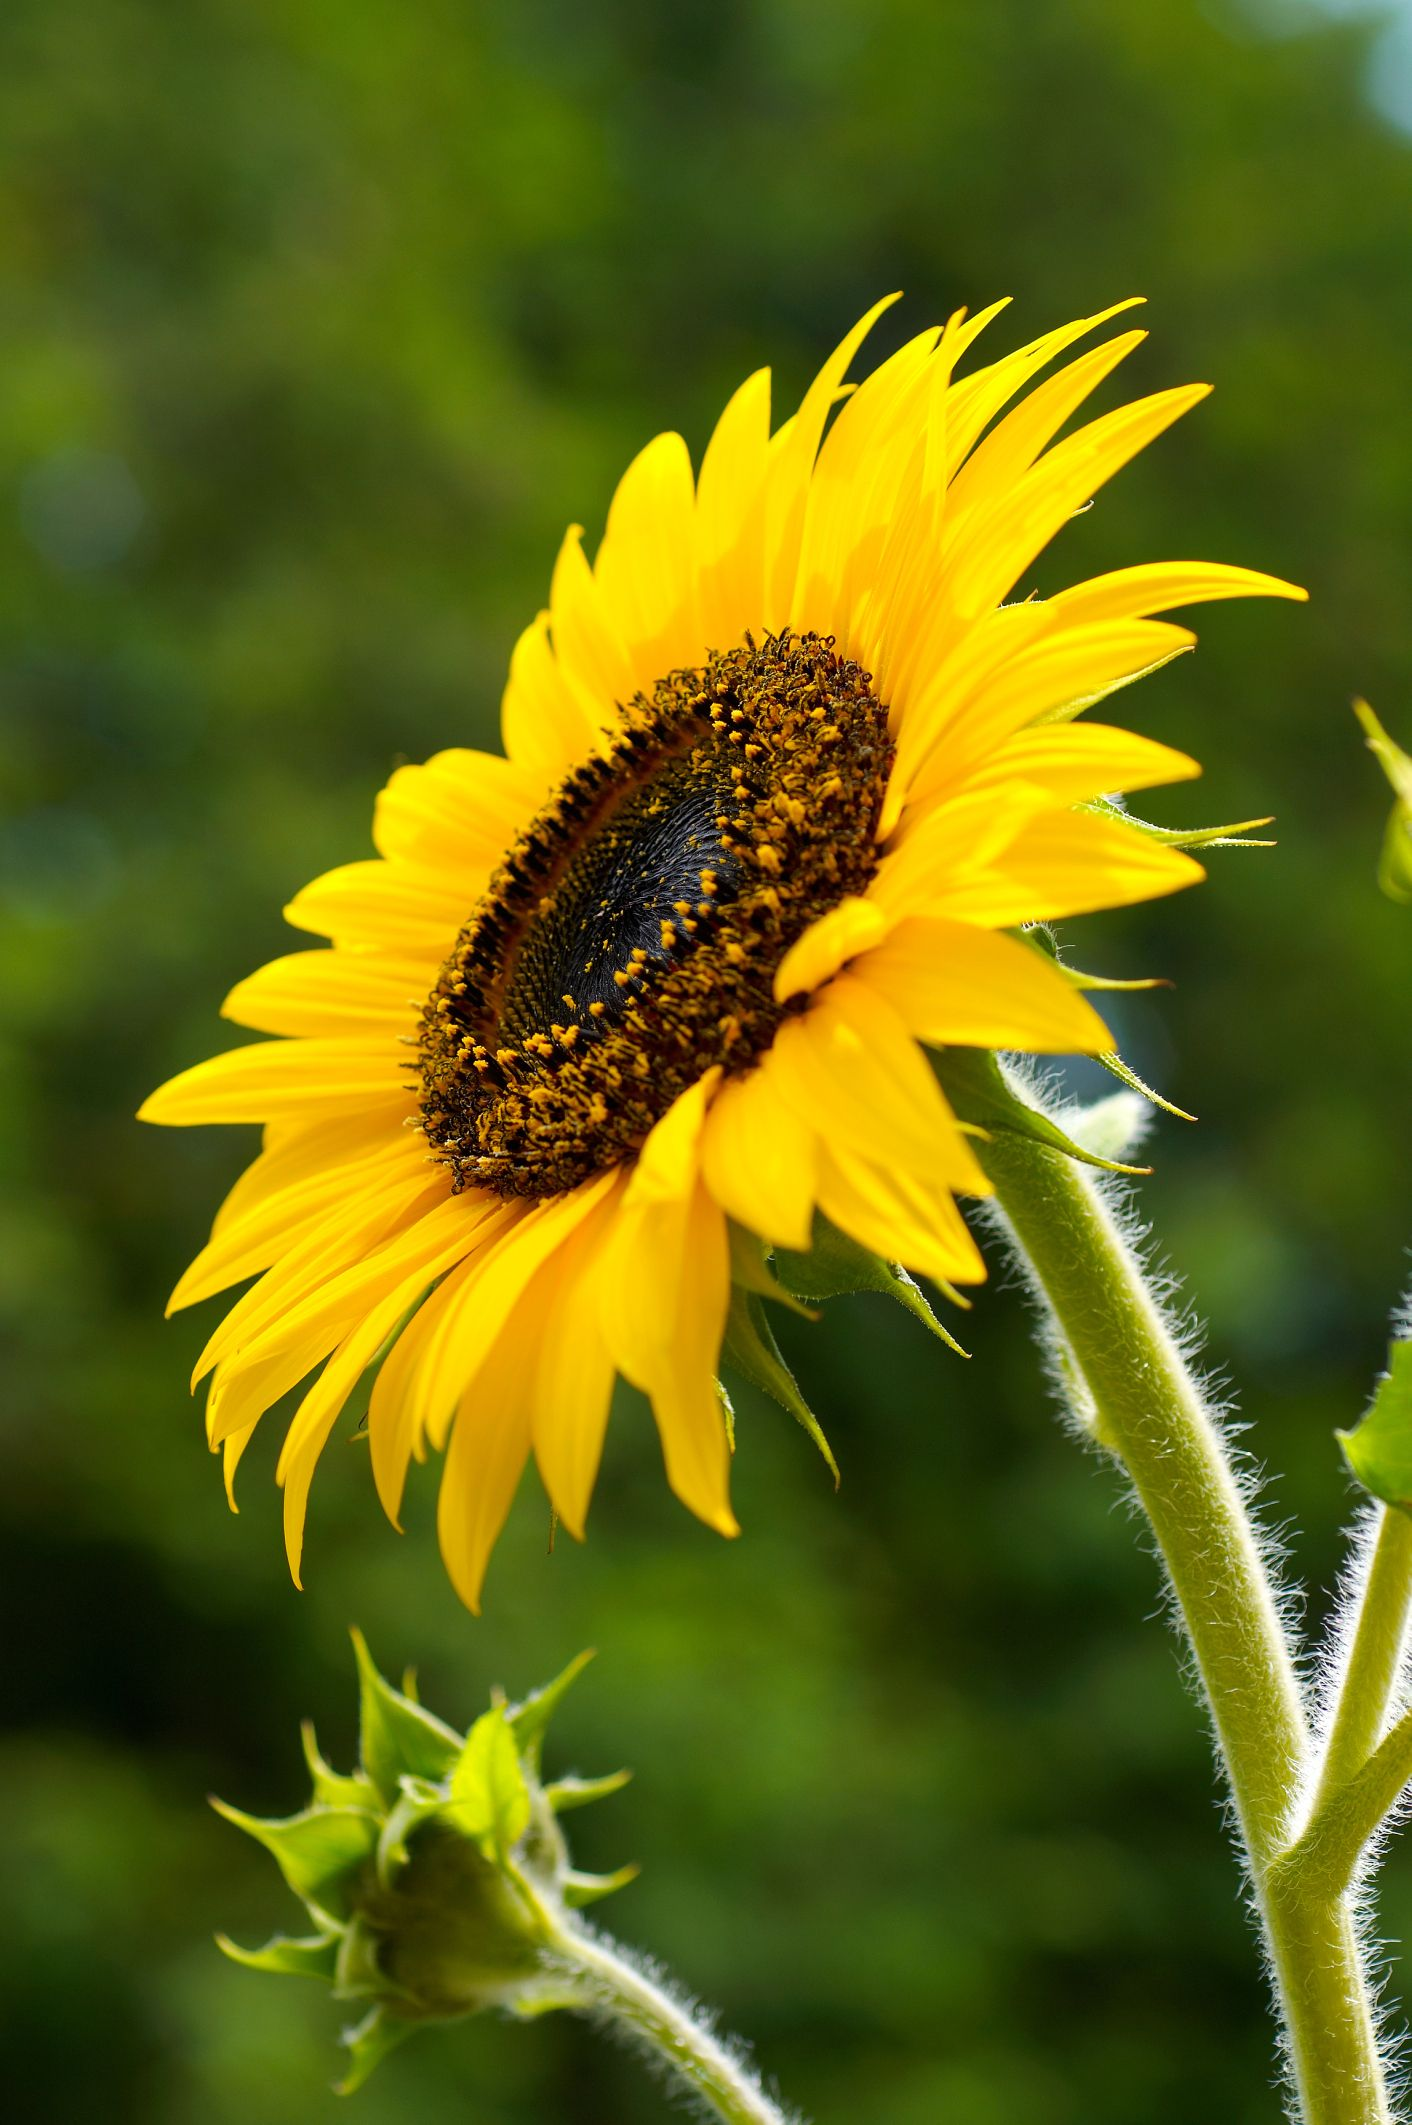 How To Collect Sunflower Seeds For Replanting Planting Sunflowers Harvesting Sunflower Seeds Dried Sunflowers